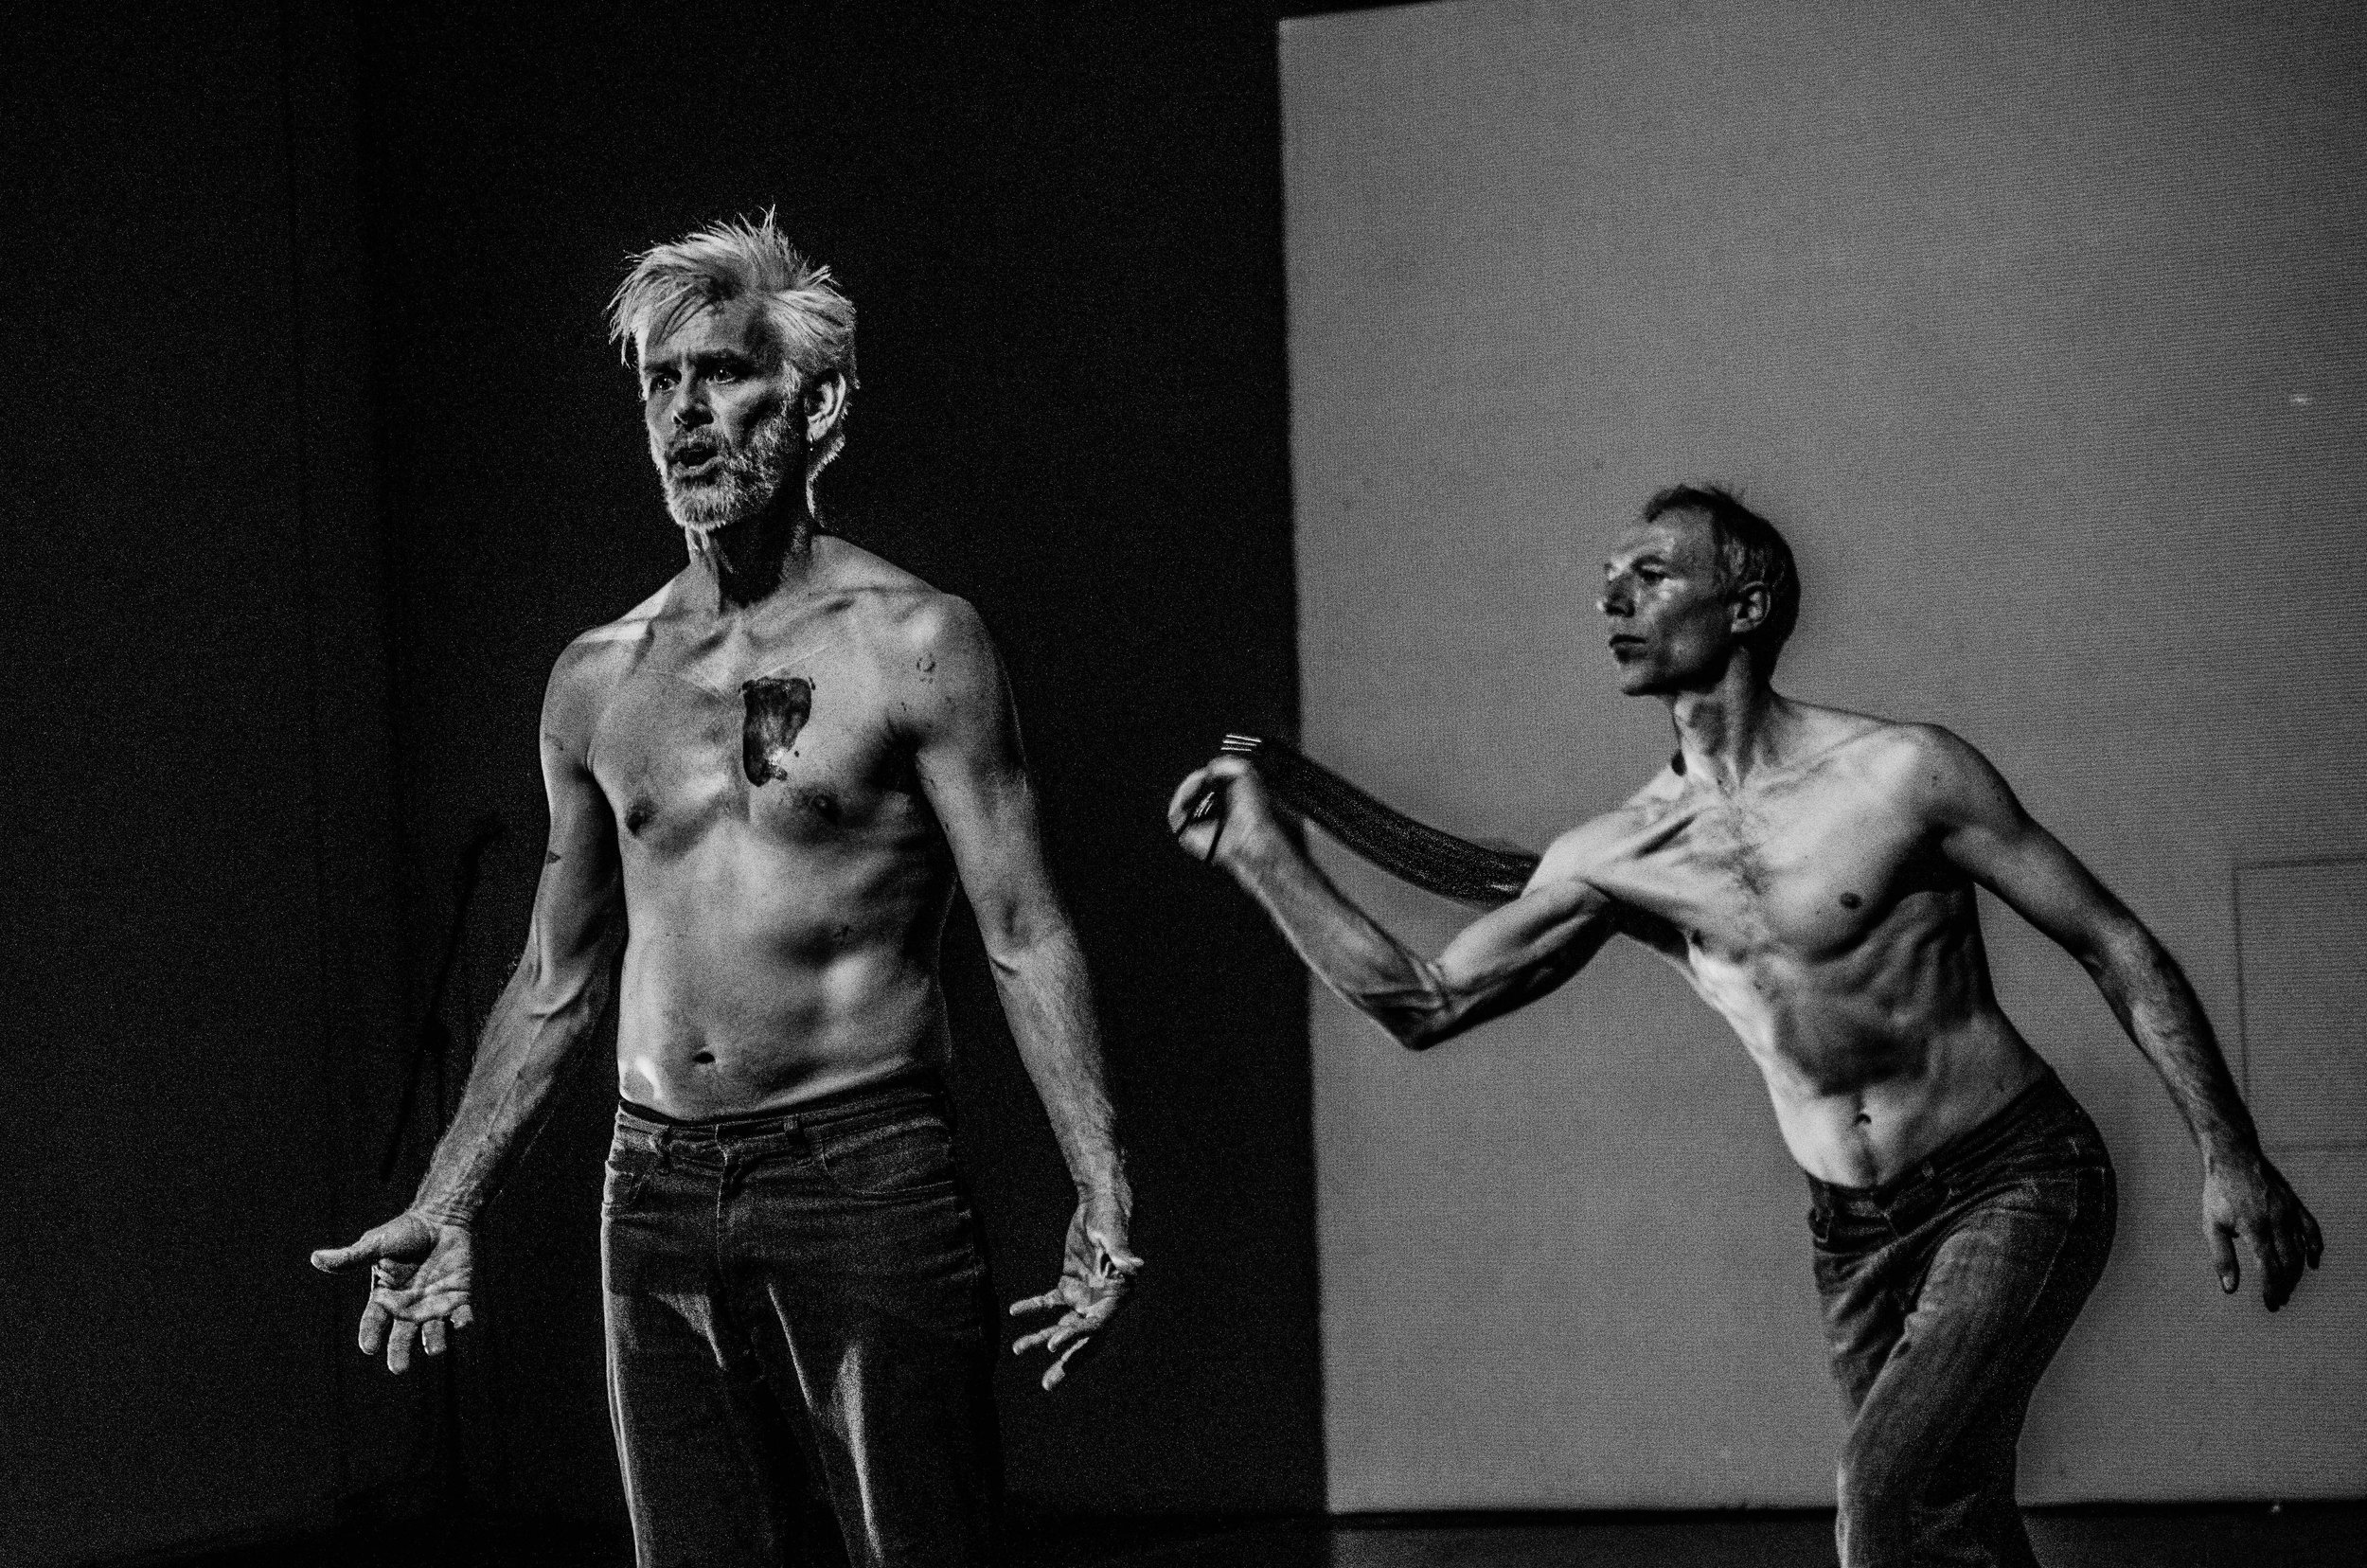 Curtis speaks, hands gesturing at his side, as Müller flogs him from behind. High contrast black and white image. (photo: Robbie Sweeny)